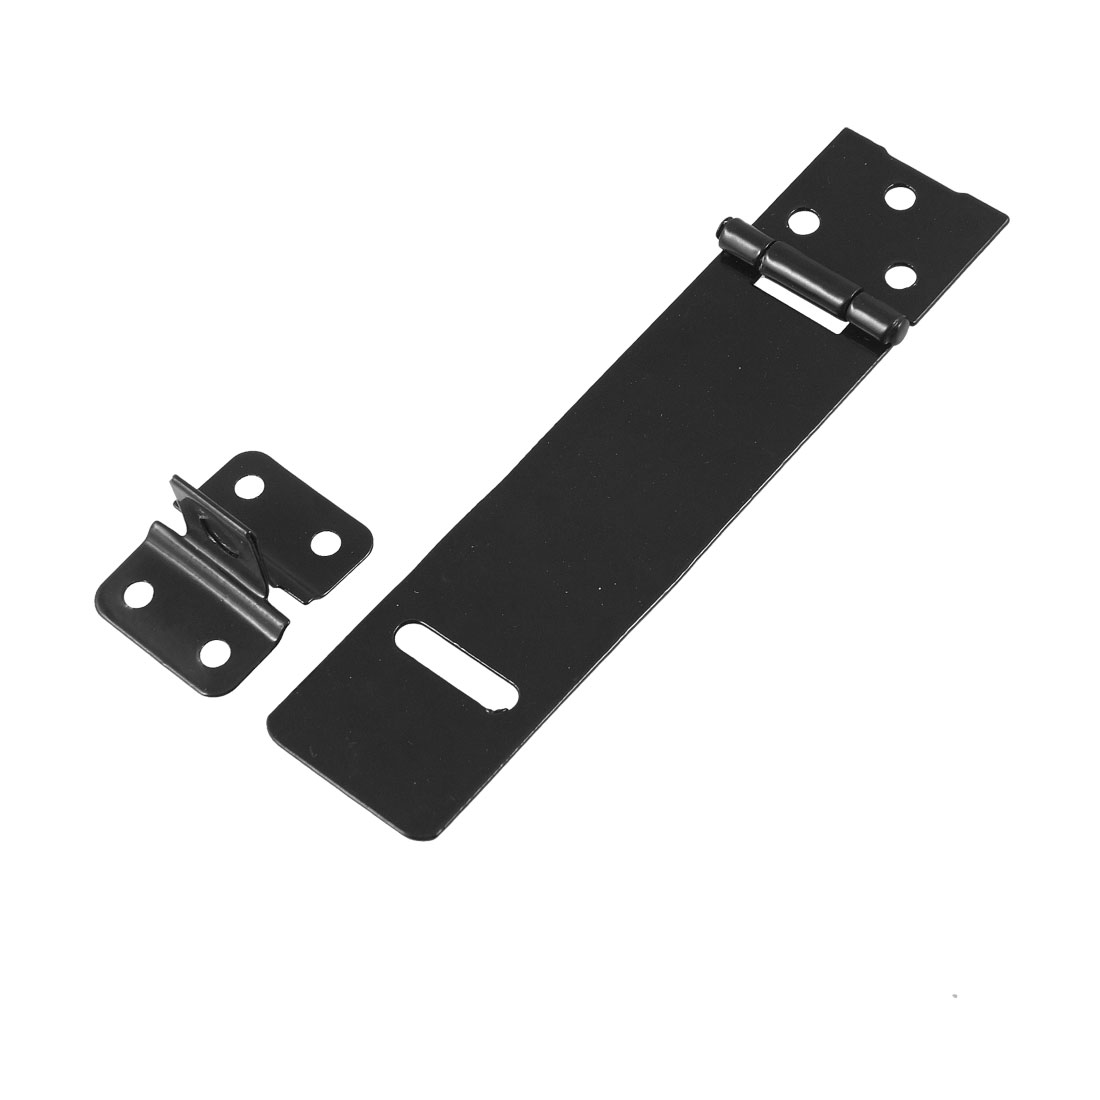 "Replacement Padlock Door Cabinet Mate Black 5.4"" Metal Hasp Staple"